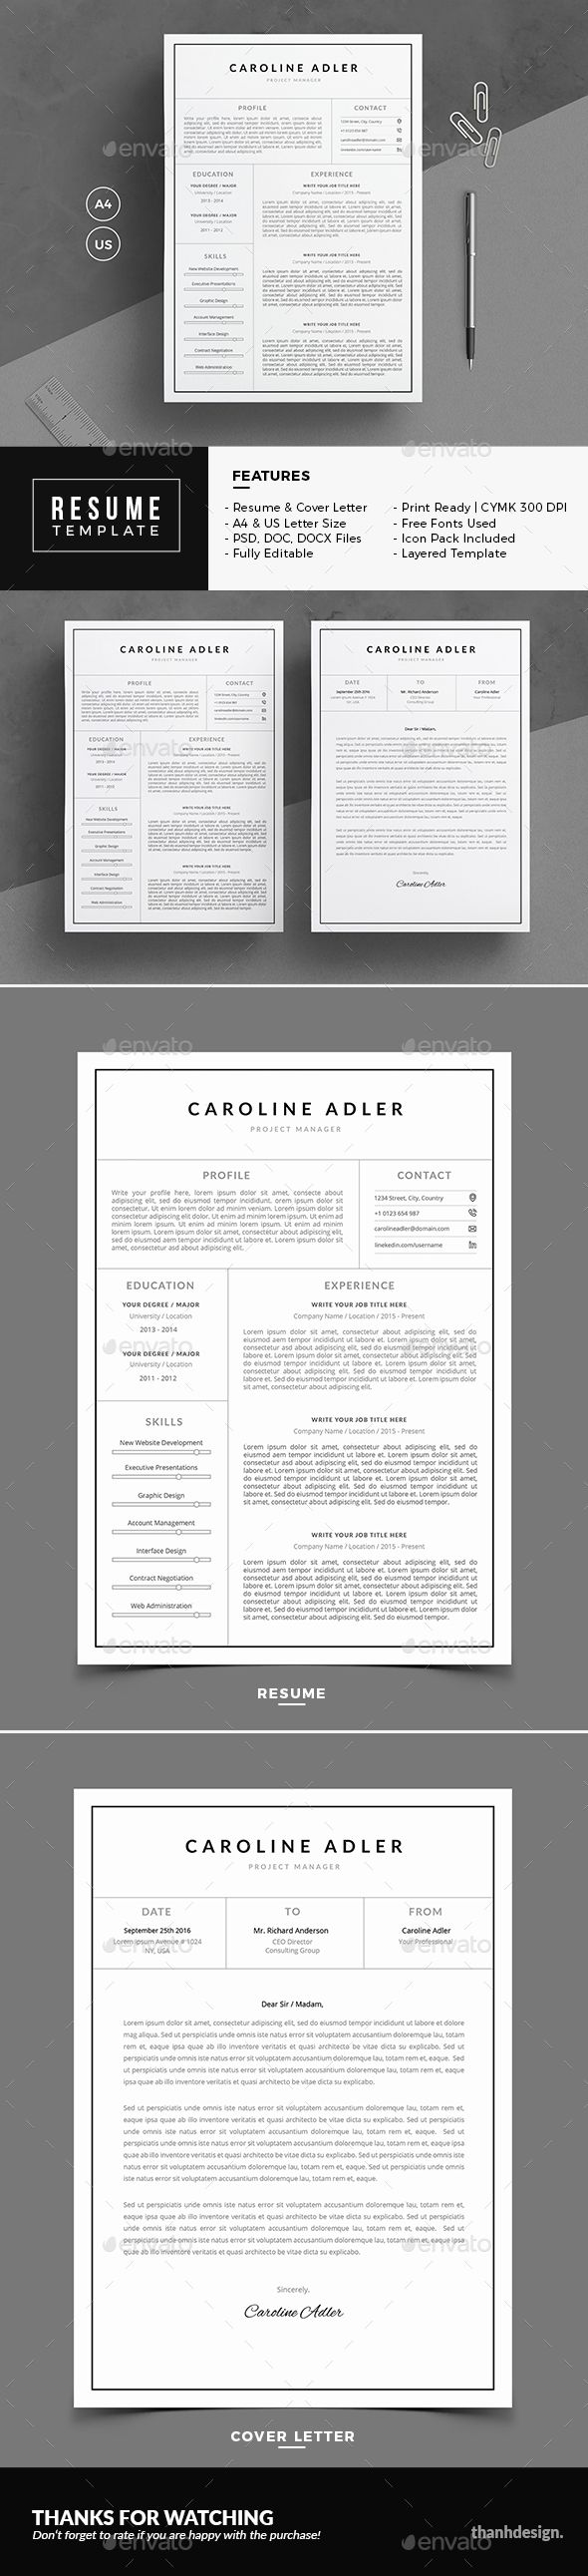 Word Cv Templates 2007%0A Resume